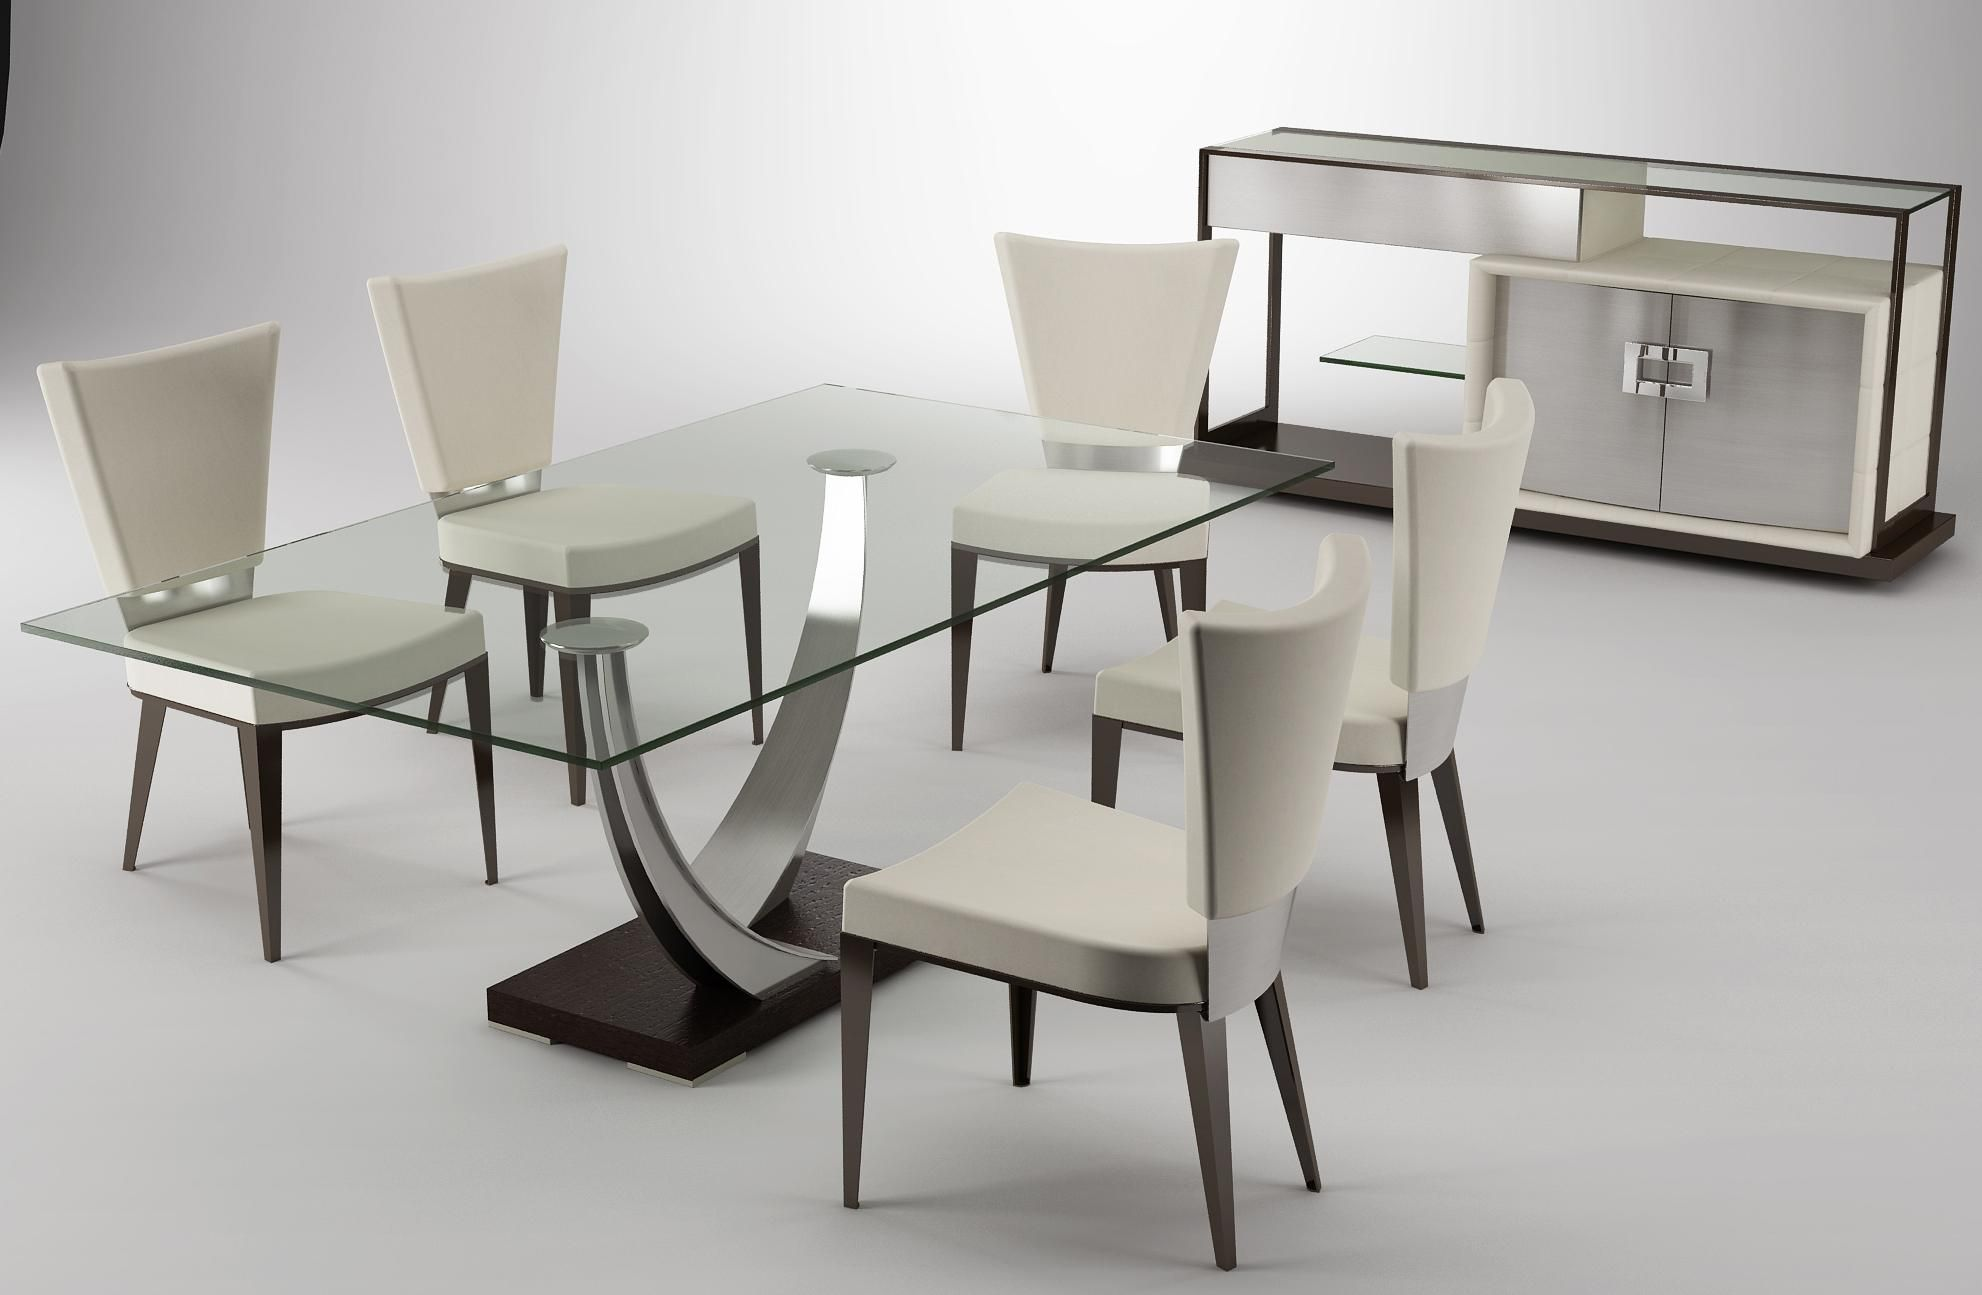 Amazing Modern Stylish Dining Room Table Set Designs Elite Tangent Glass Top Furniture Stores